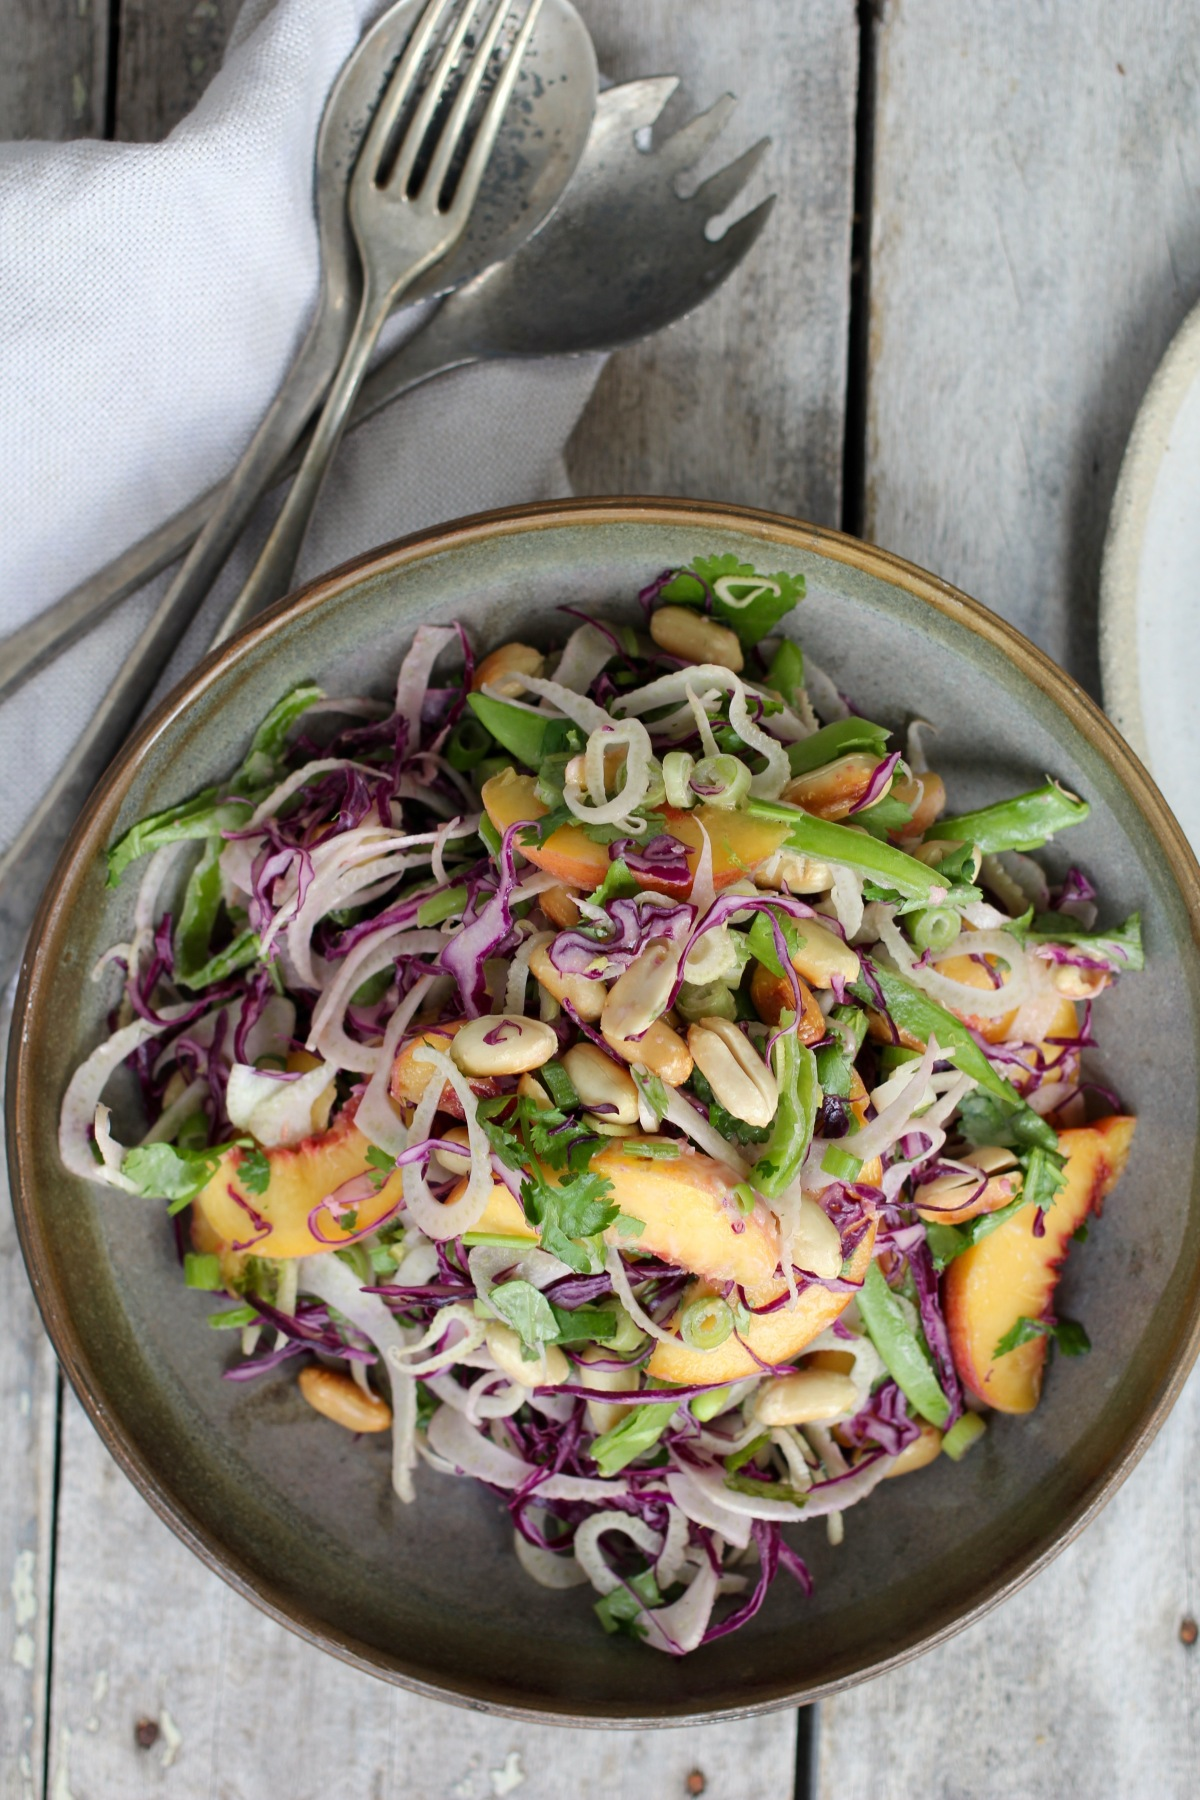 Peach & Fennel Salad with Ginger-Lime Dressing